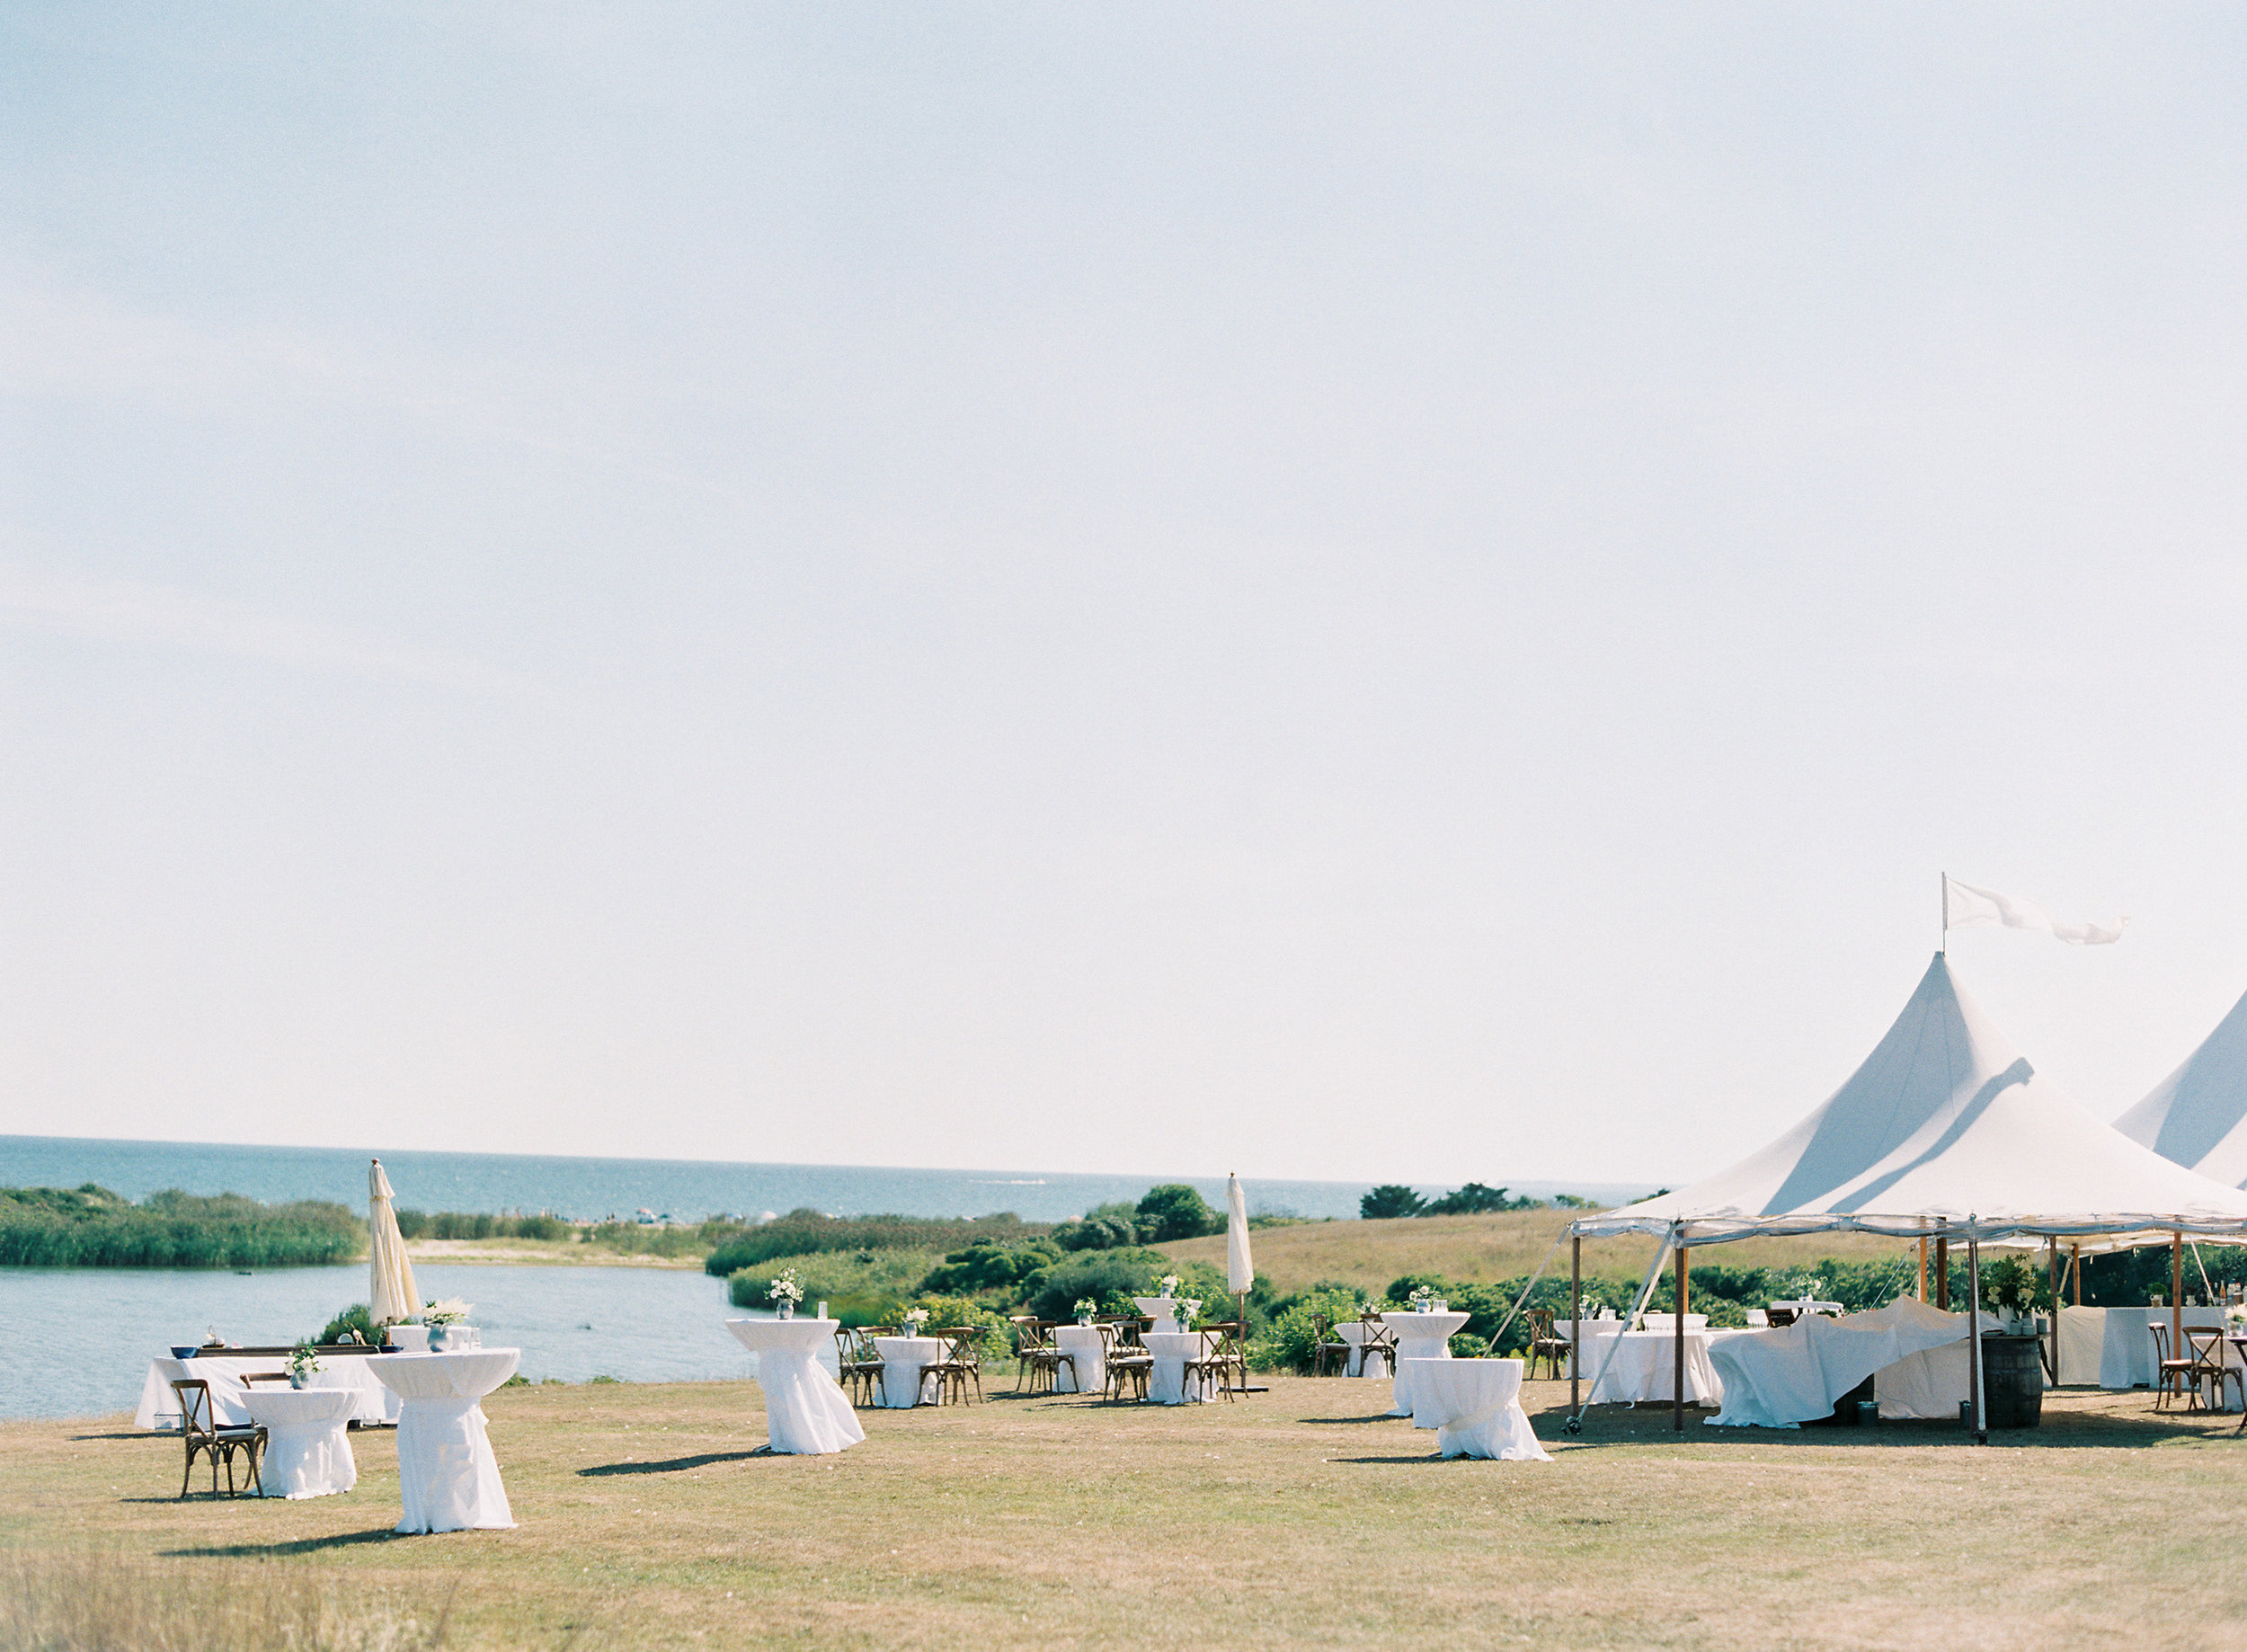 Marthas-Vineyard-Wedding-on-Martha-Stewart-470.jpg